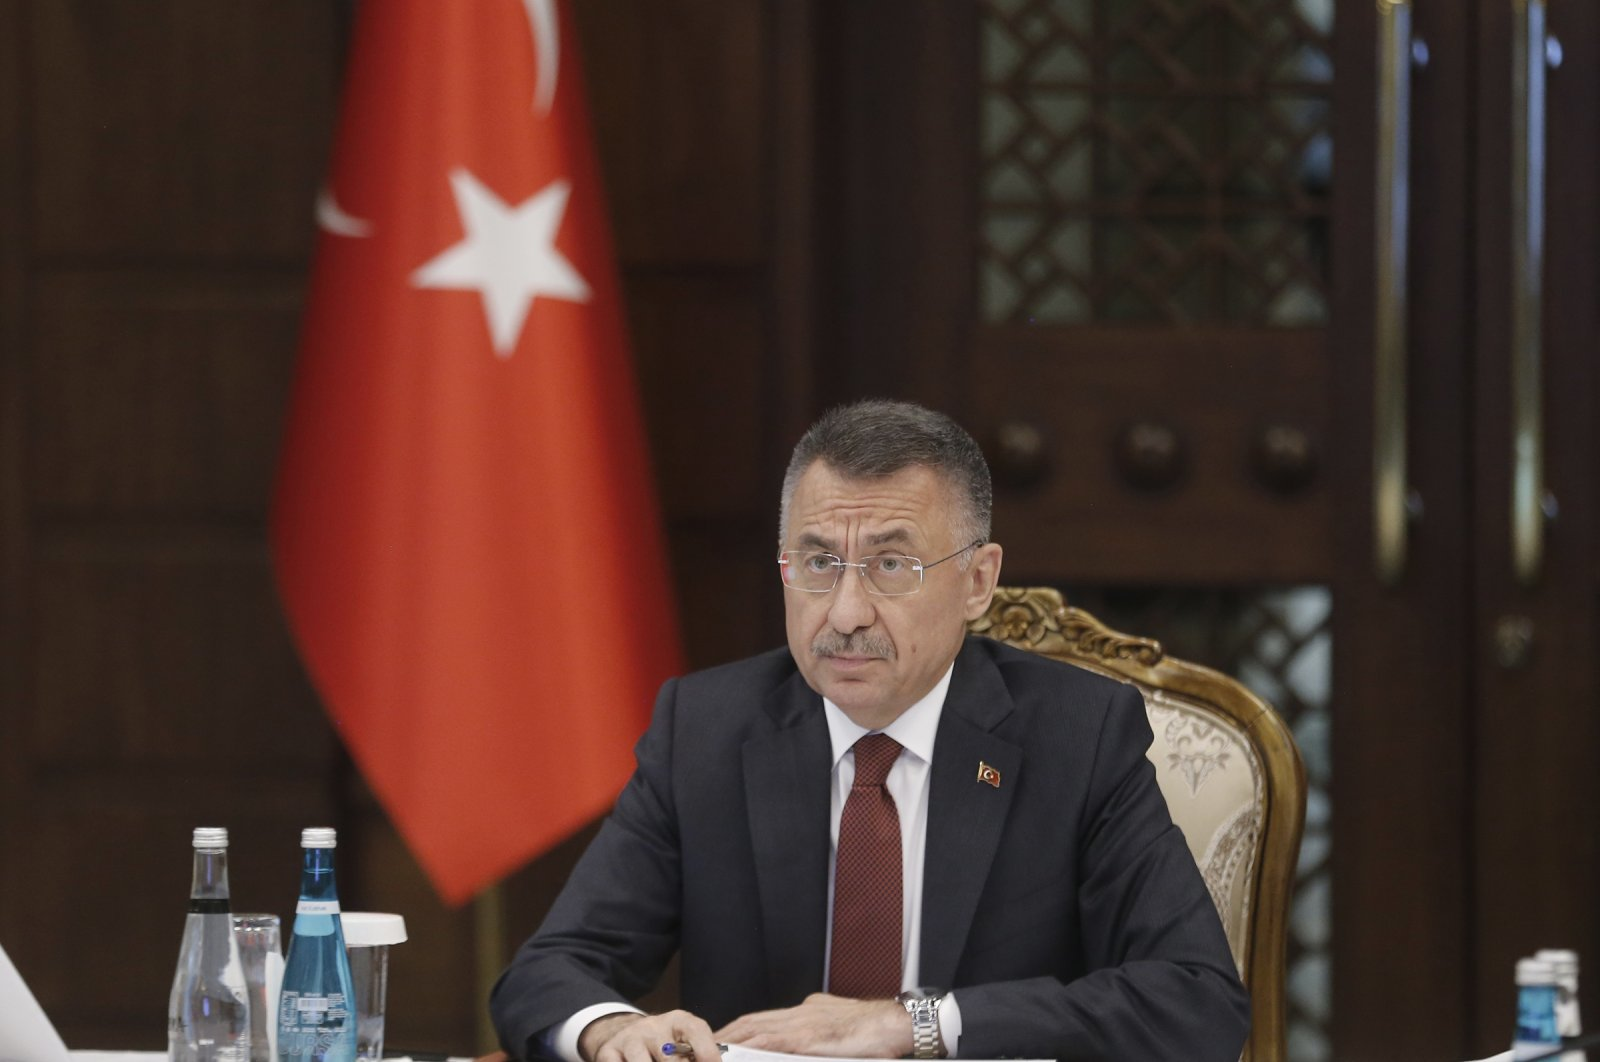 Vice President Fuat Oktay speaks at a press conference in Presidential Complex, Ankara, June 24, 2021. (AA Photo)